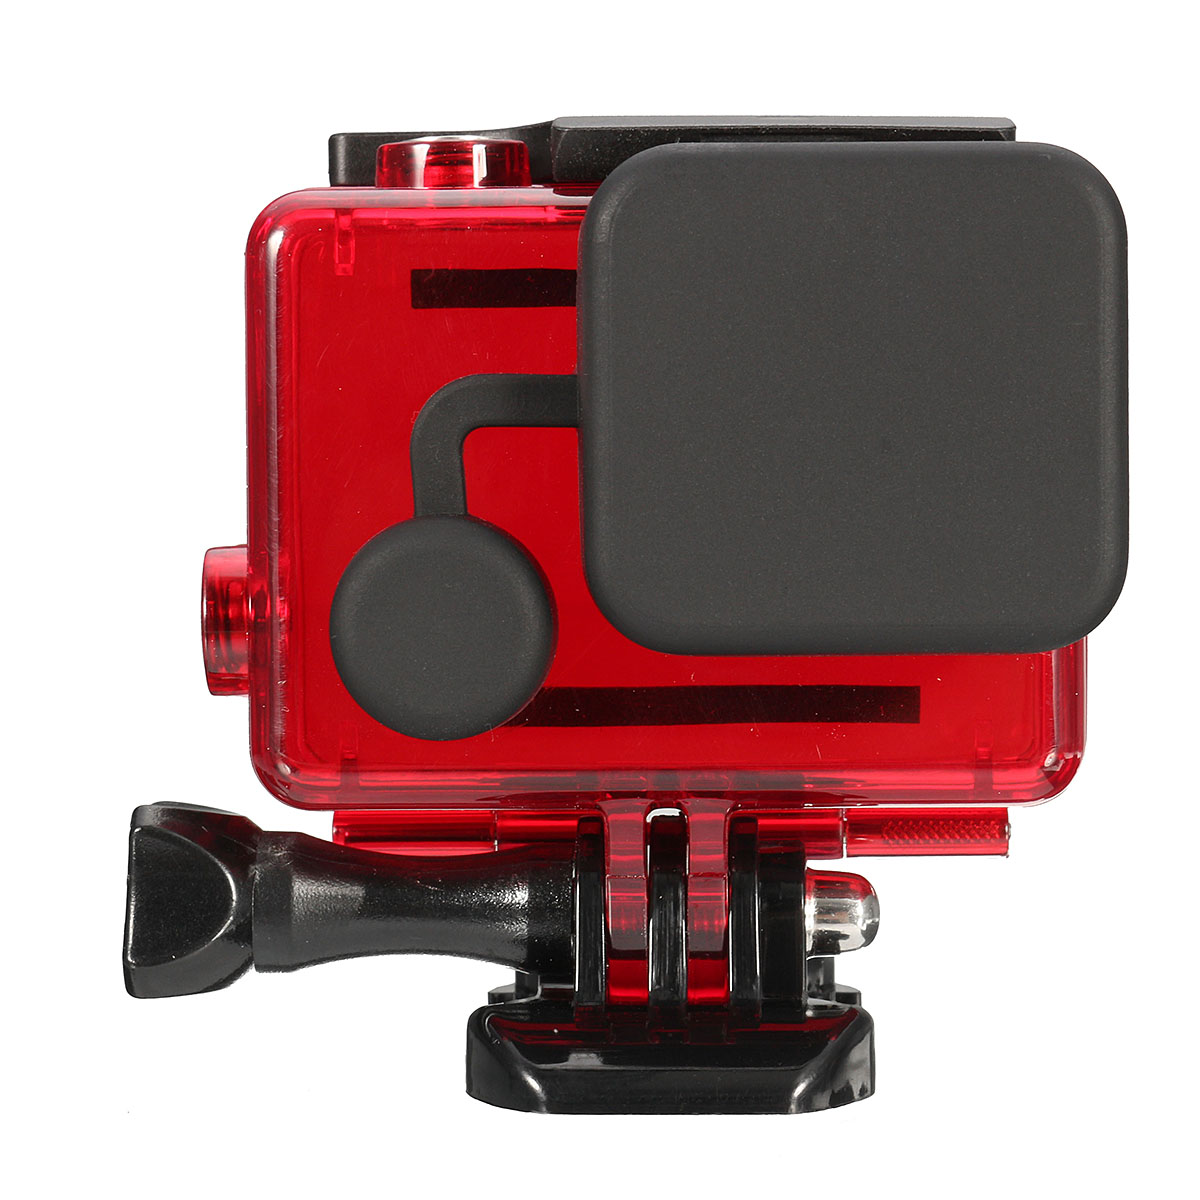 Waterproof Housing Protective Underwater Diving Case Shell with Lens Cap for GoPro Hero 3 3+4